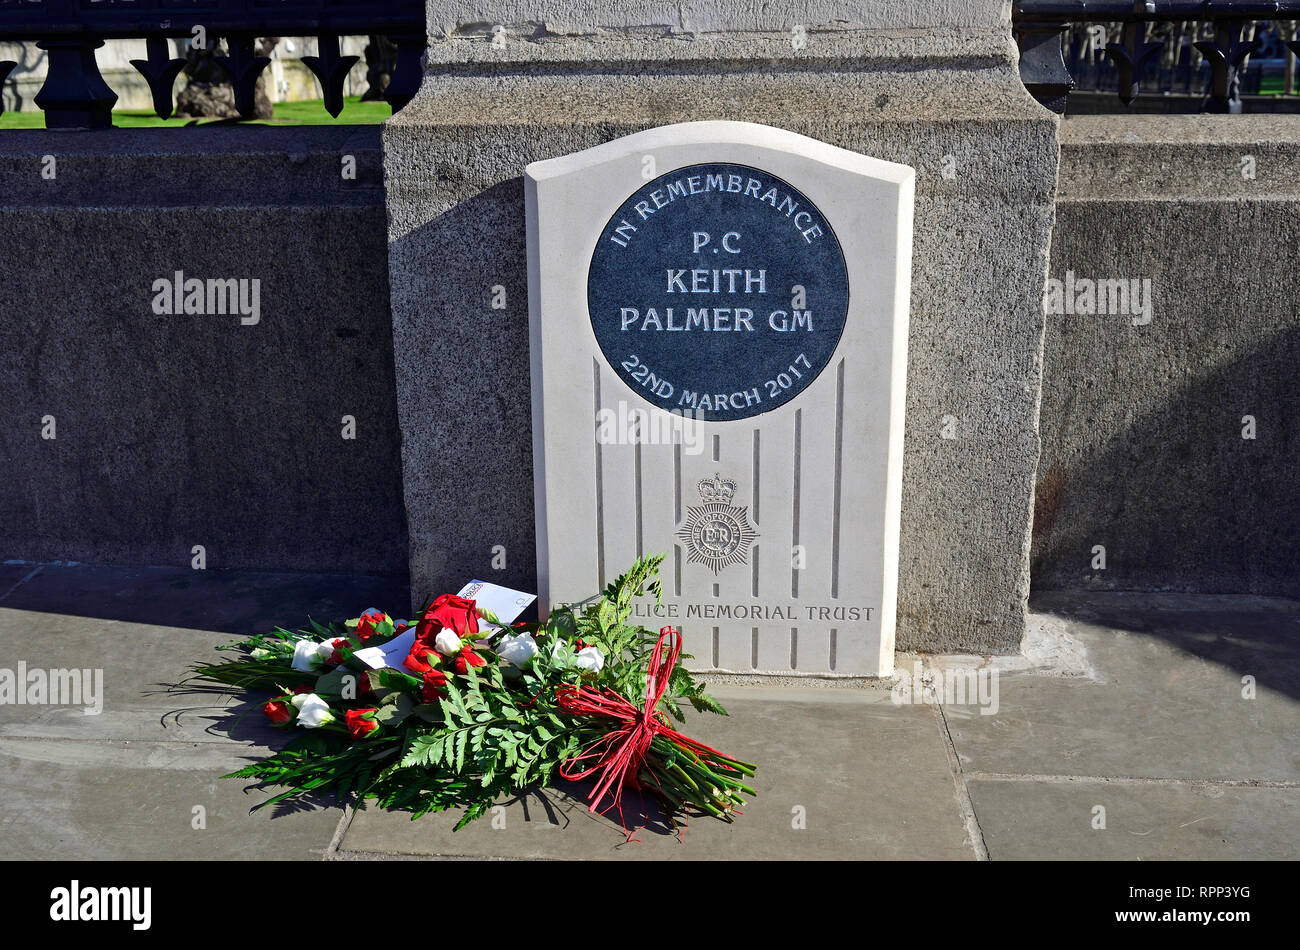 London, England, UK. Memorial to PC Keith Palmer GM (George Medal) murdered in the grounds of the Houses of Parliament 22nd March 2017. Unveilled by t - Stock Image